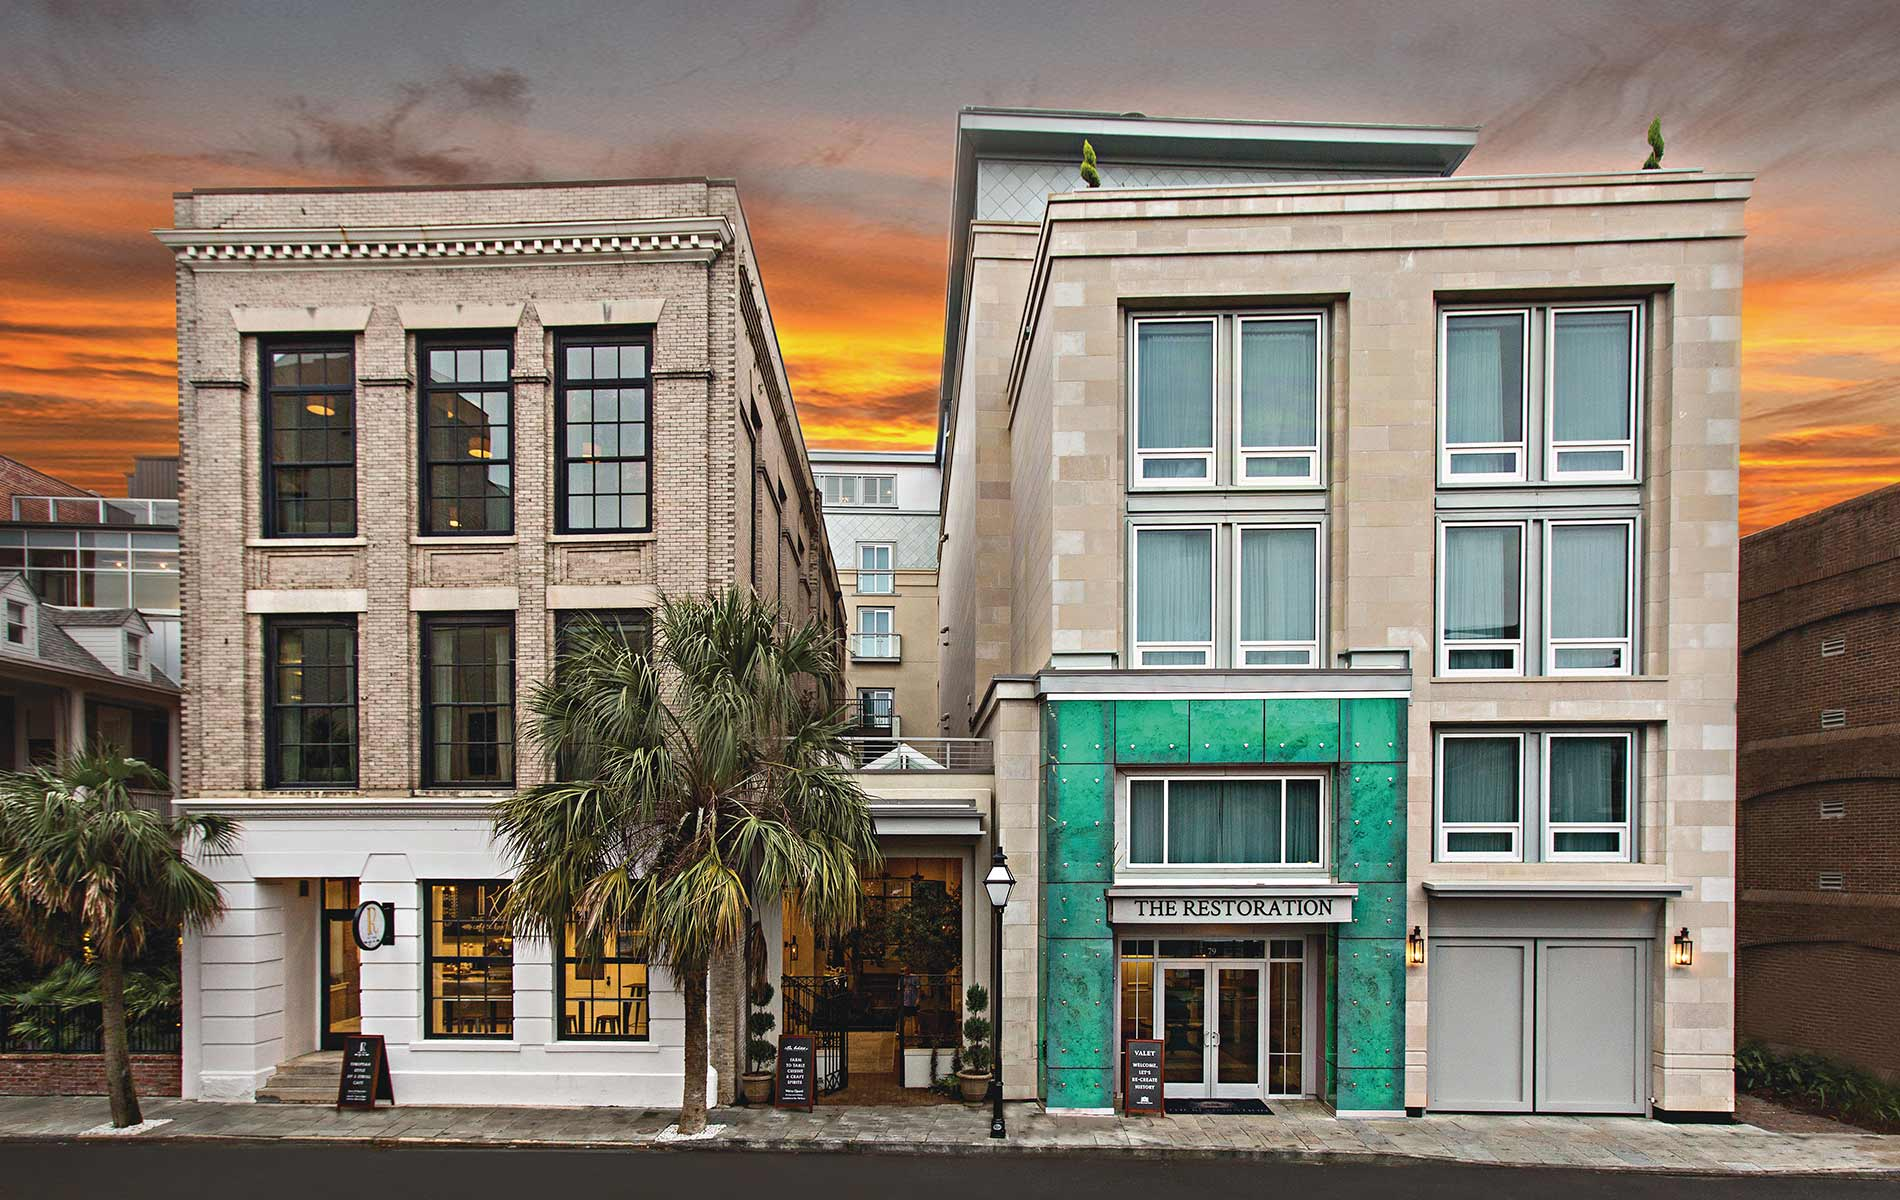 The Restoration Hotel in Charleston, South Carolina